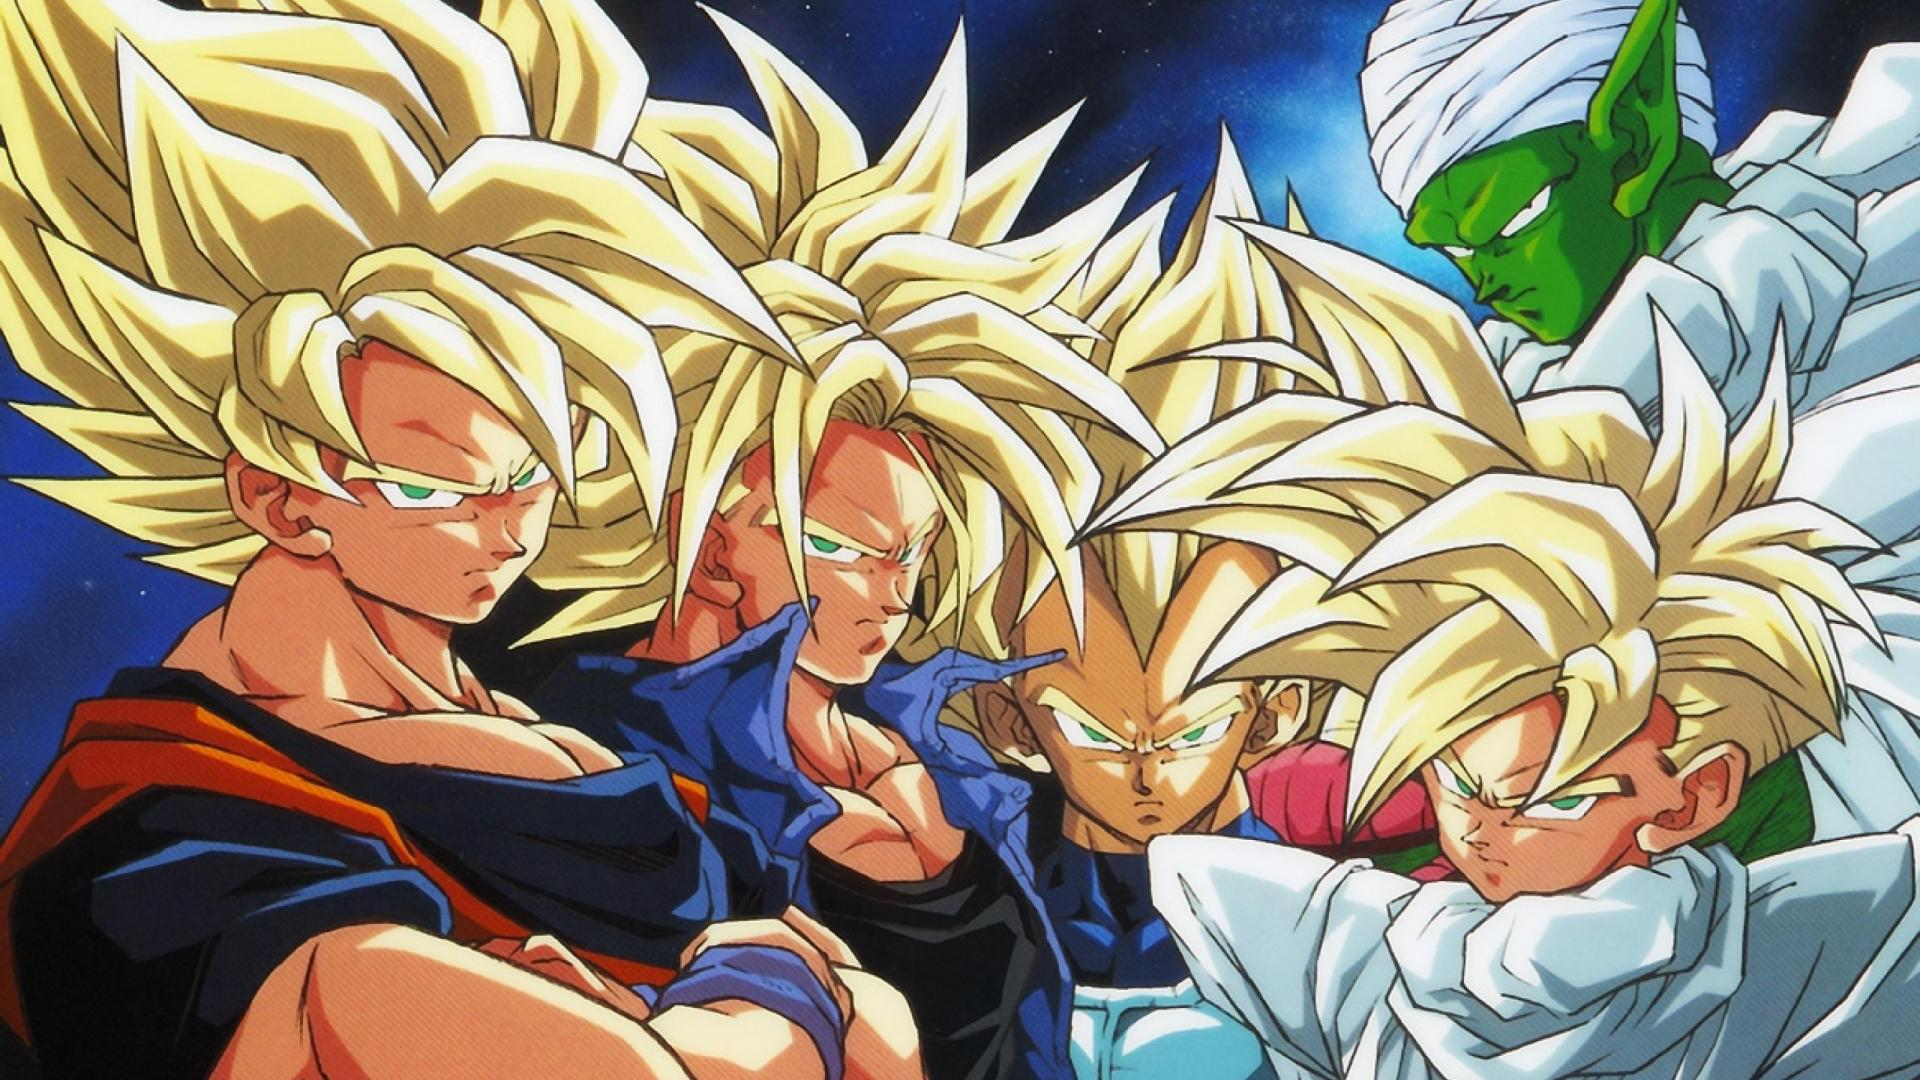 Dragon Ball Z Trunks Gallery 598254347 Wallpaper For Free New